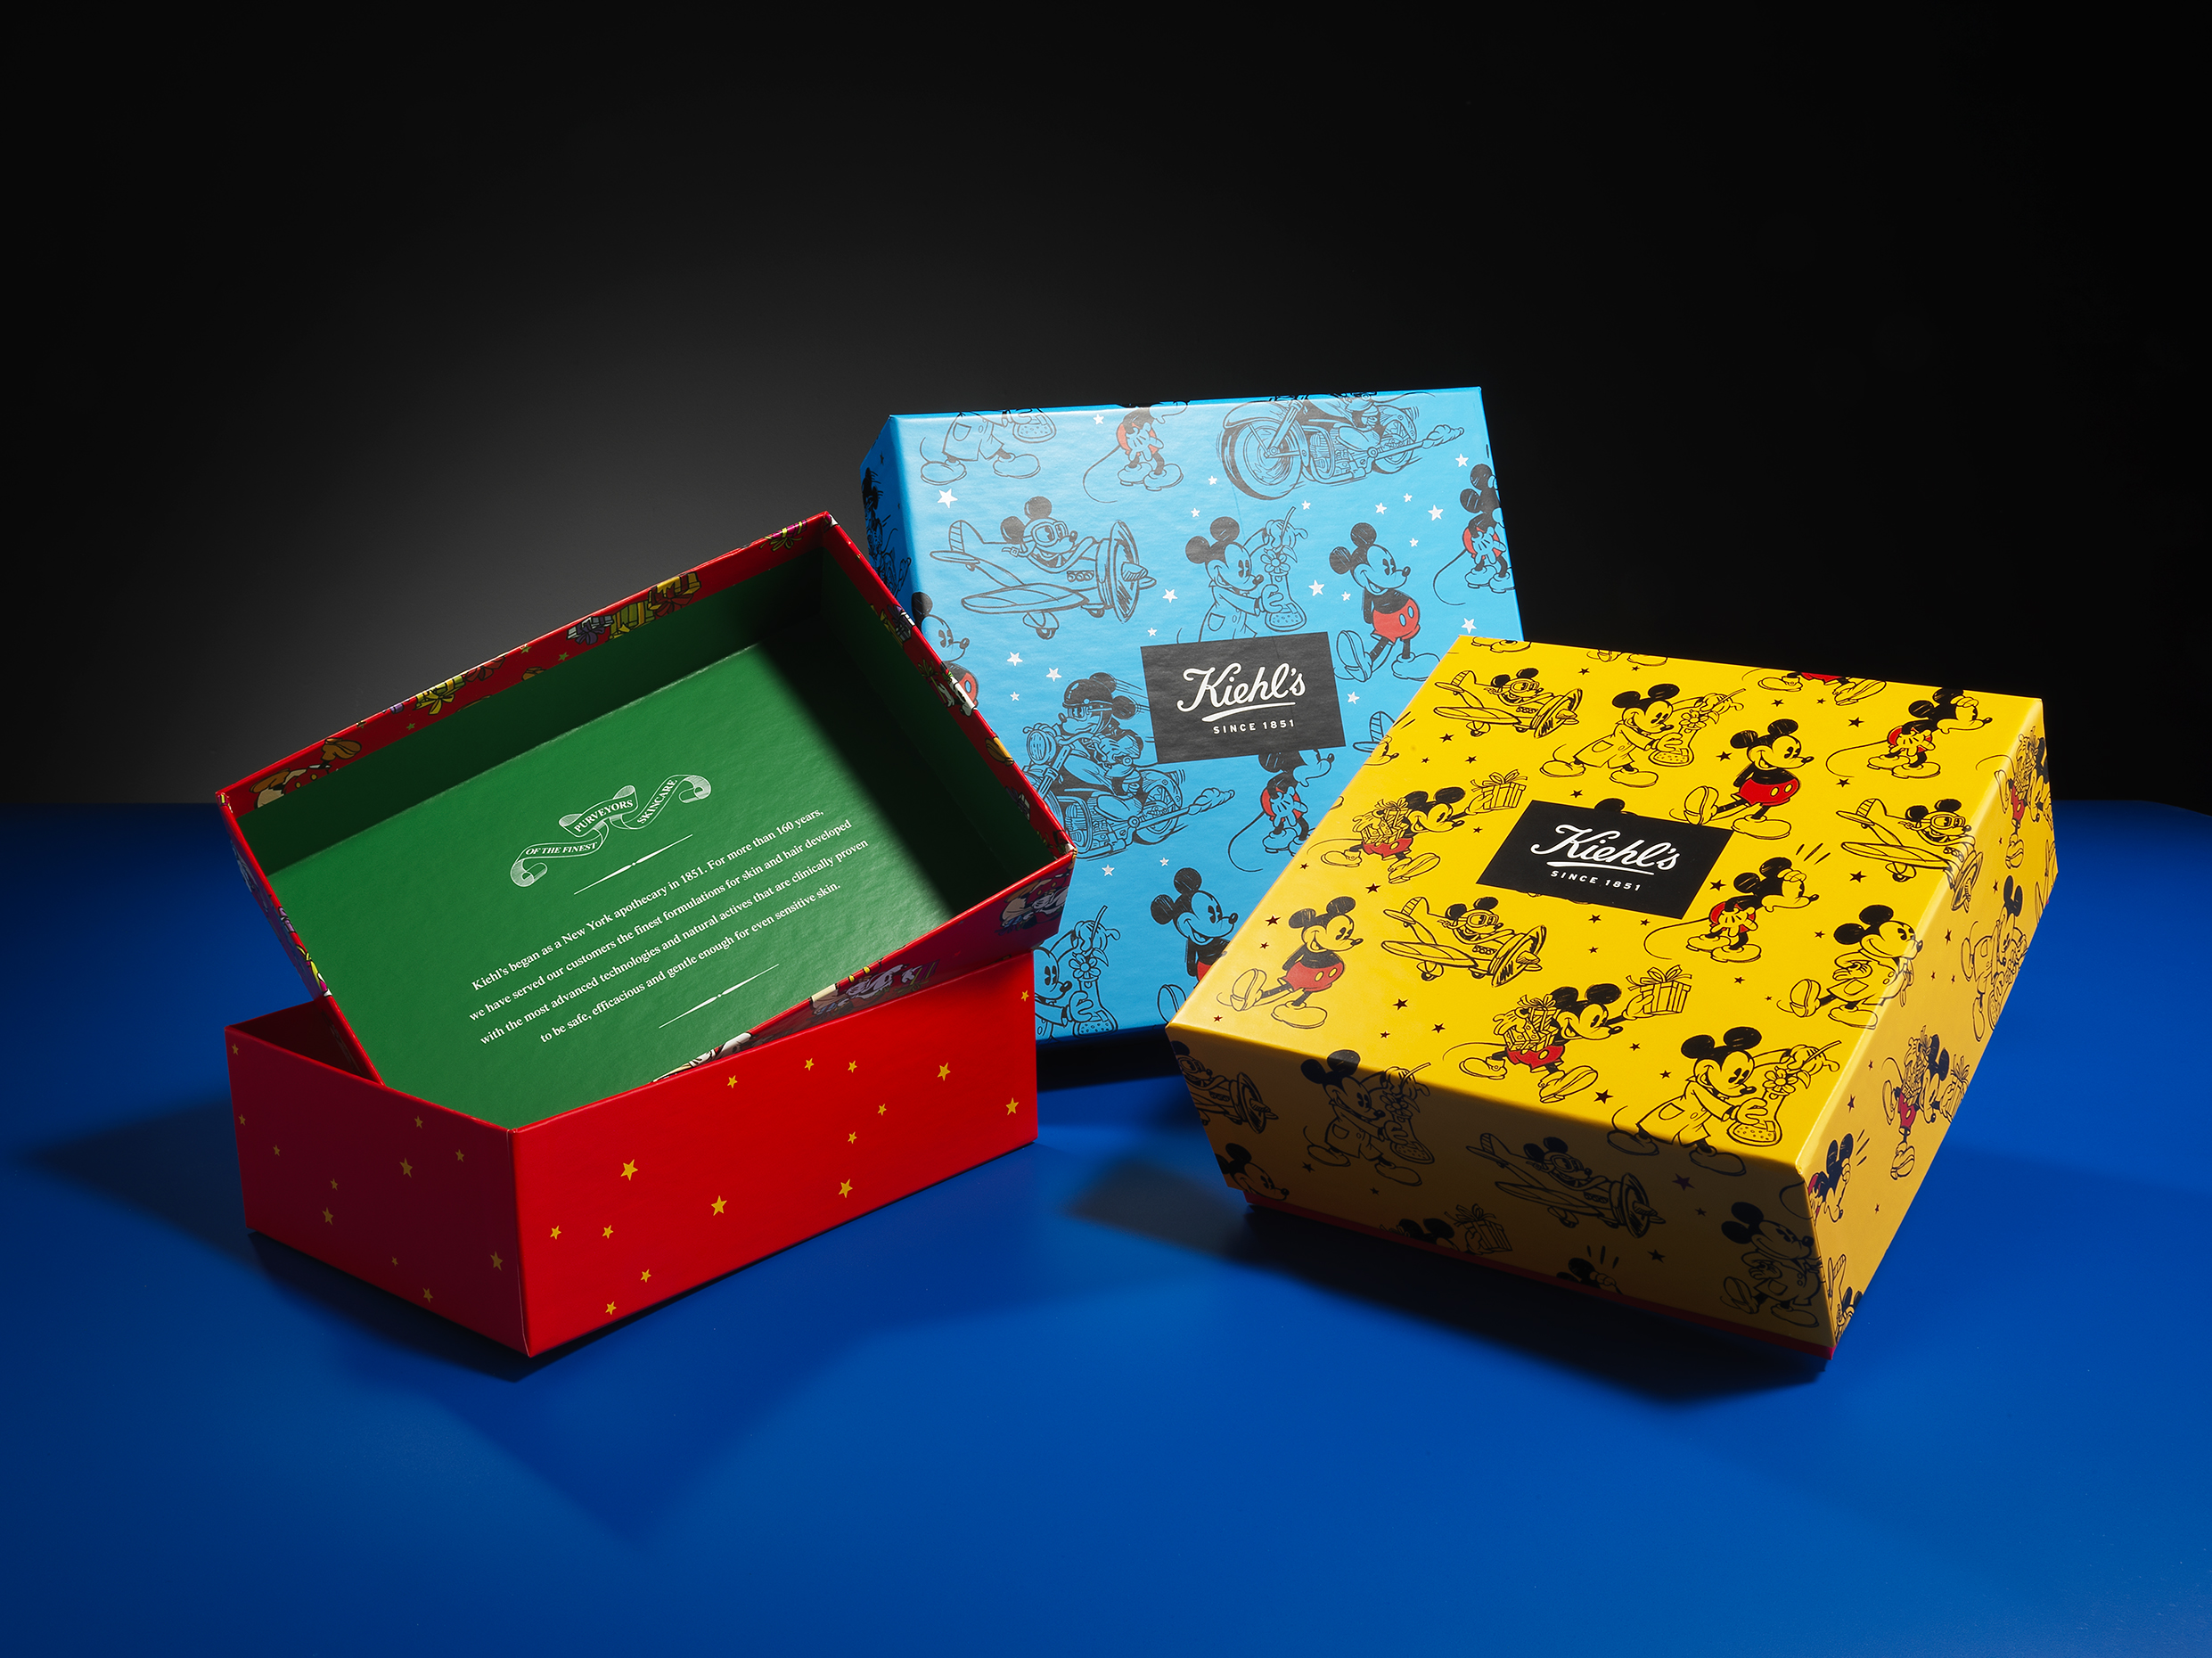 Iconic packaging colors on Keihl's Boxes.